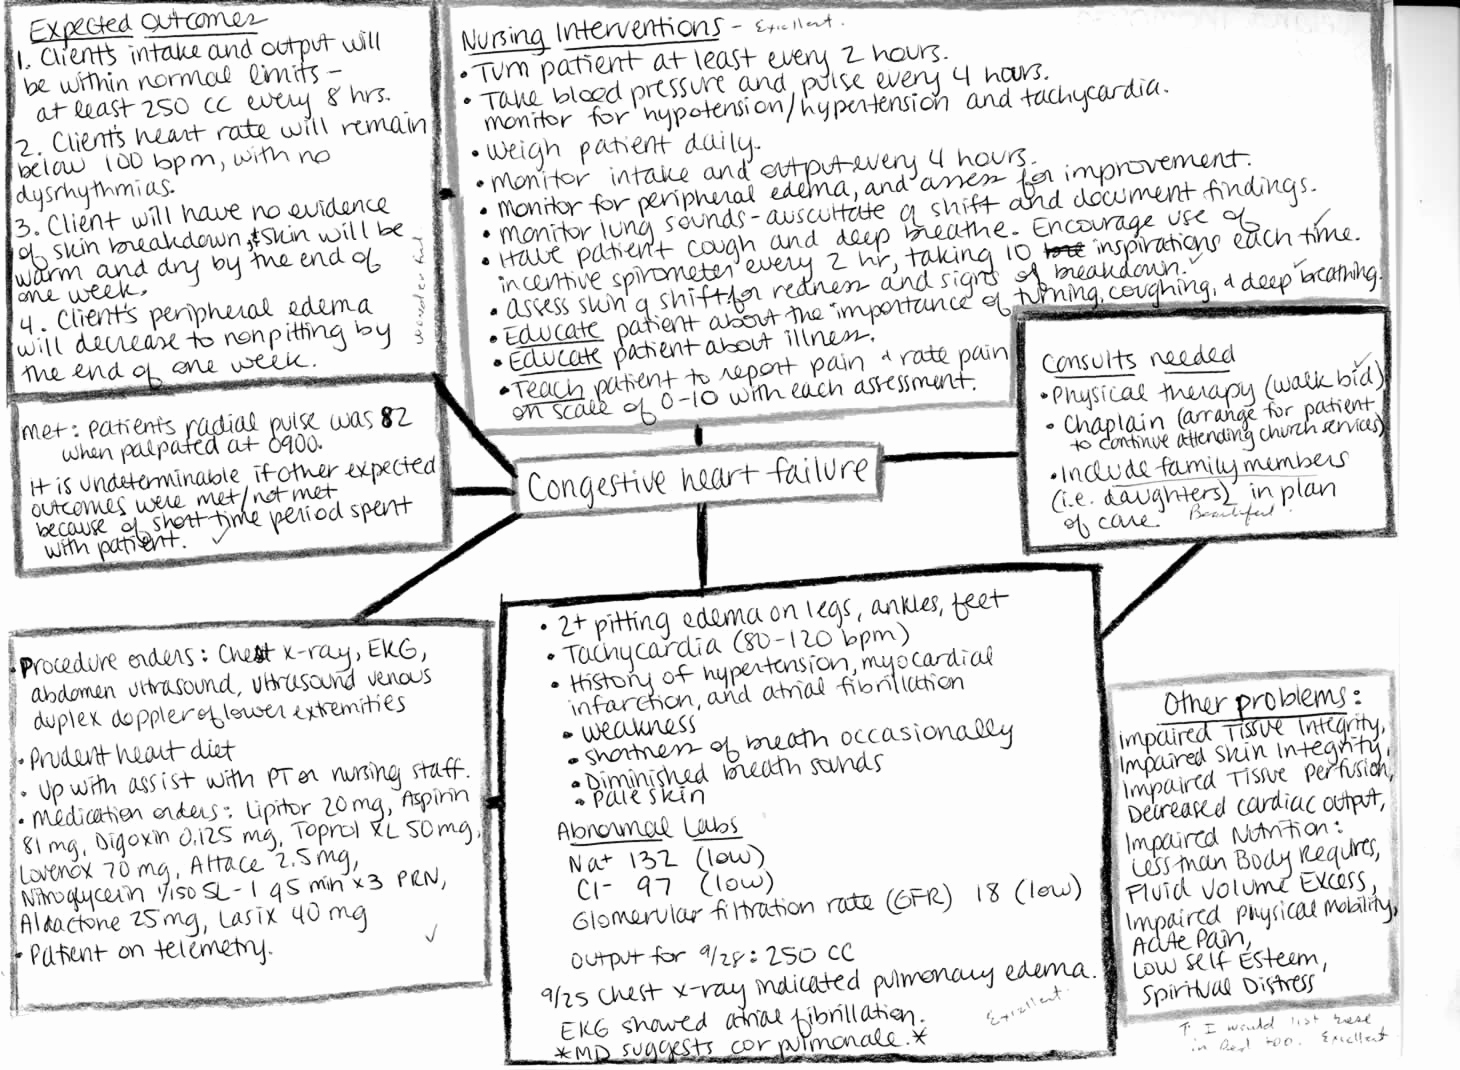 Nursing Concept Mapping Template New Nursing Concept Maps Process